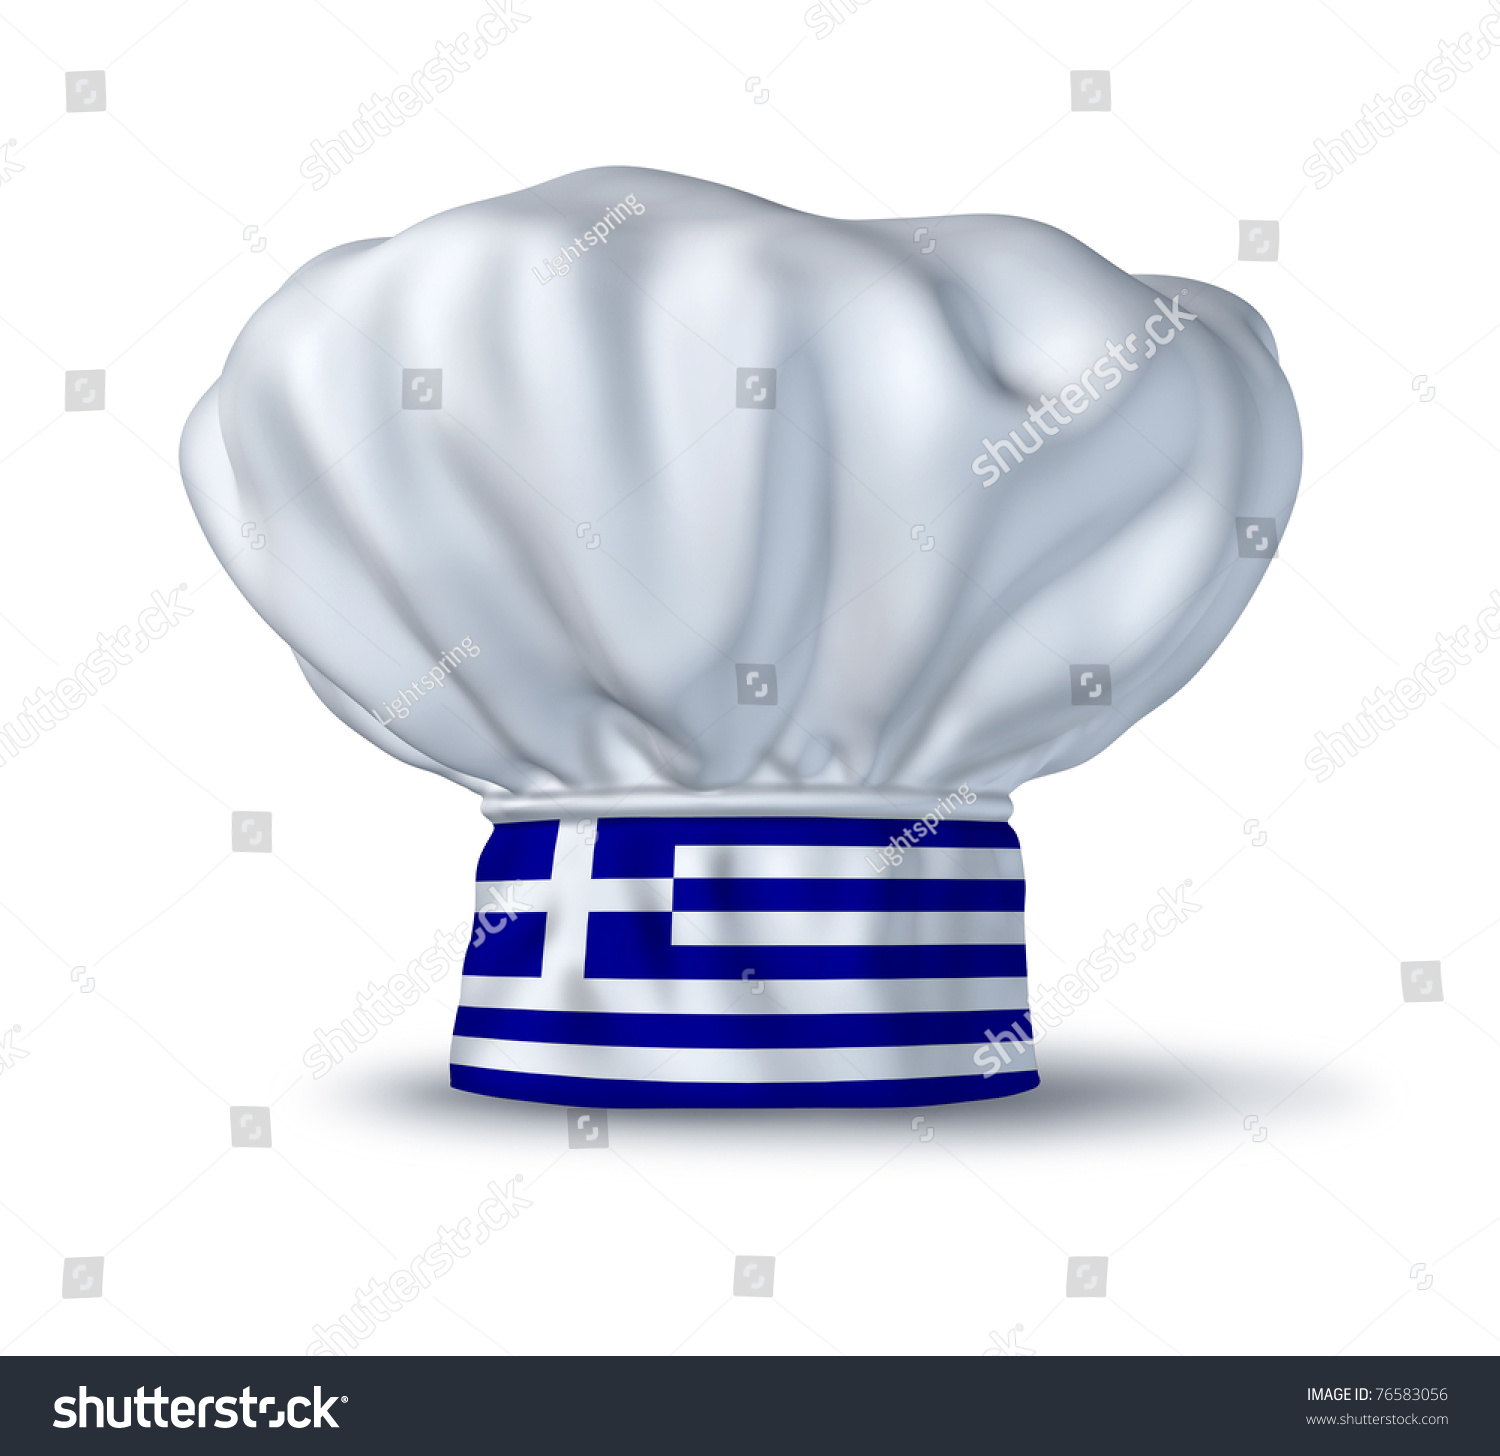 Italian Restaurant Logo With Flag: Greek Cooking Symbol Represented By Chefs Stock